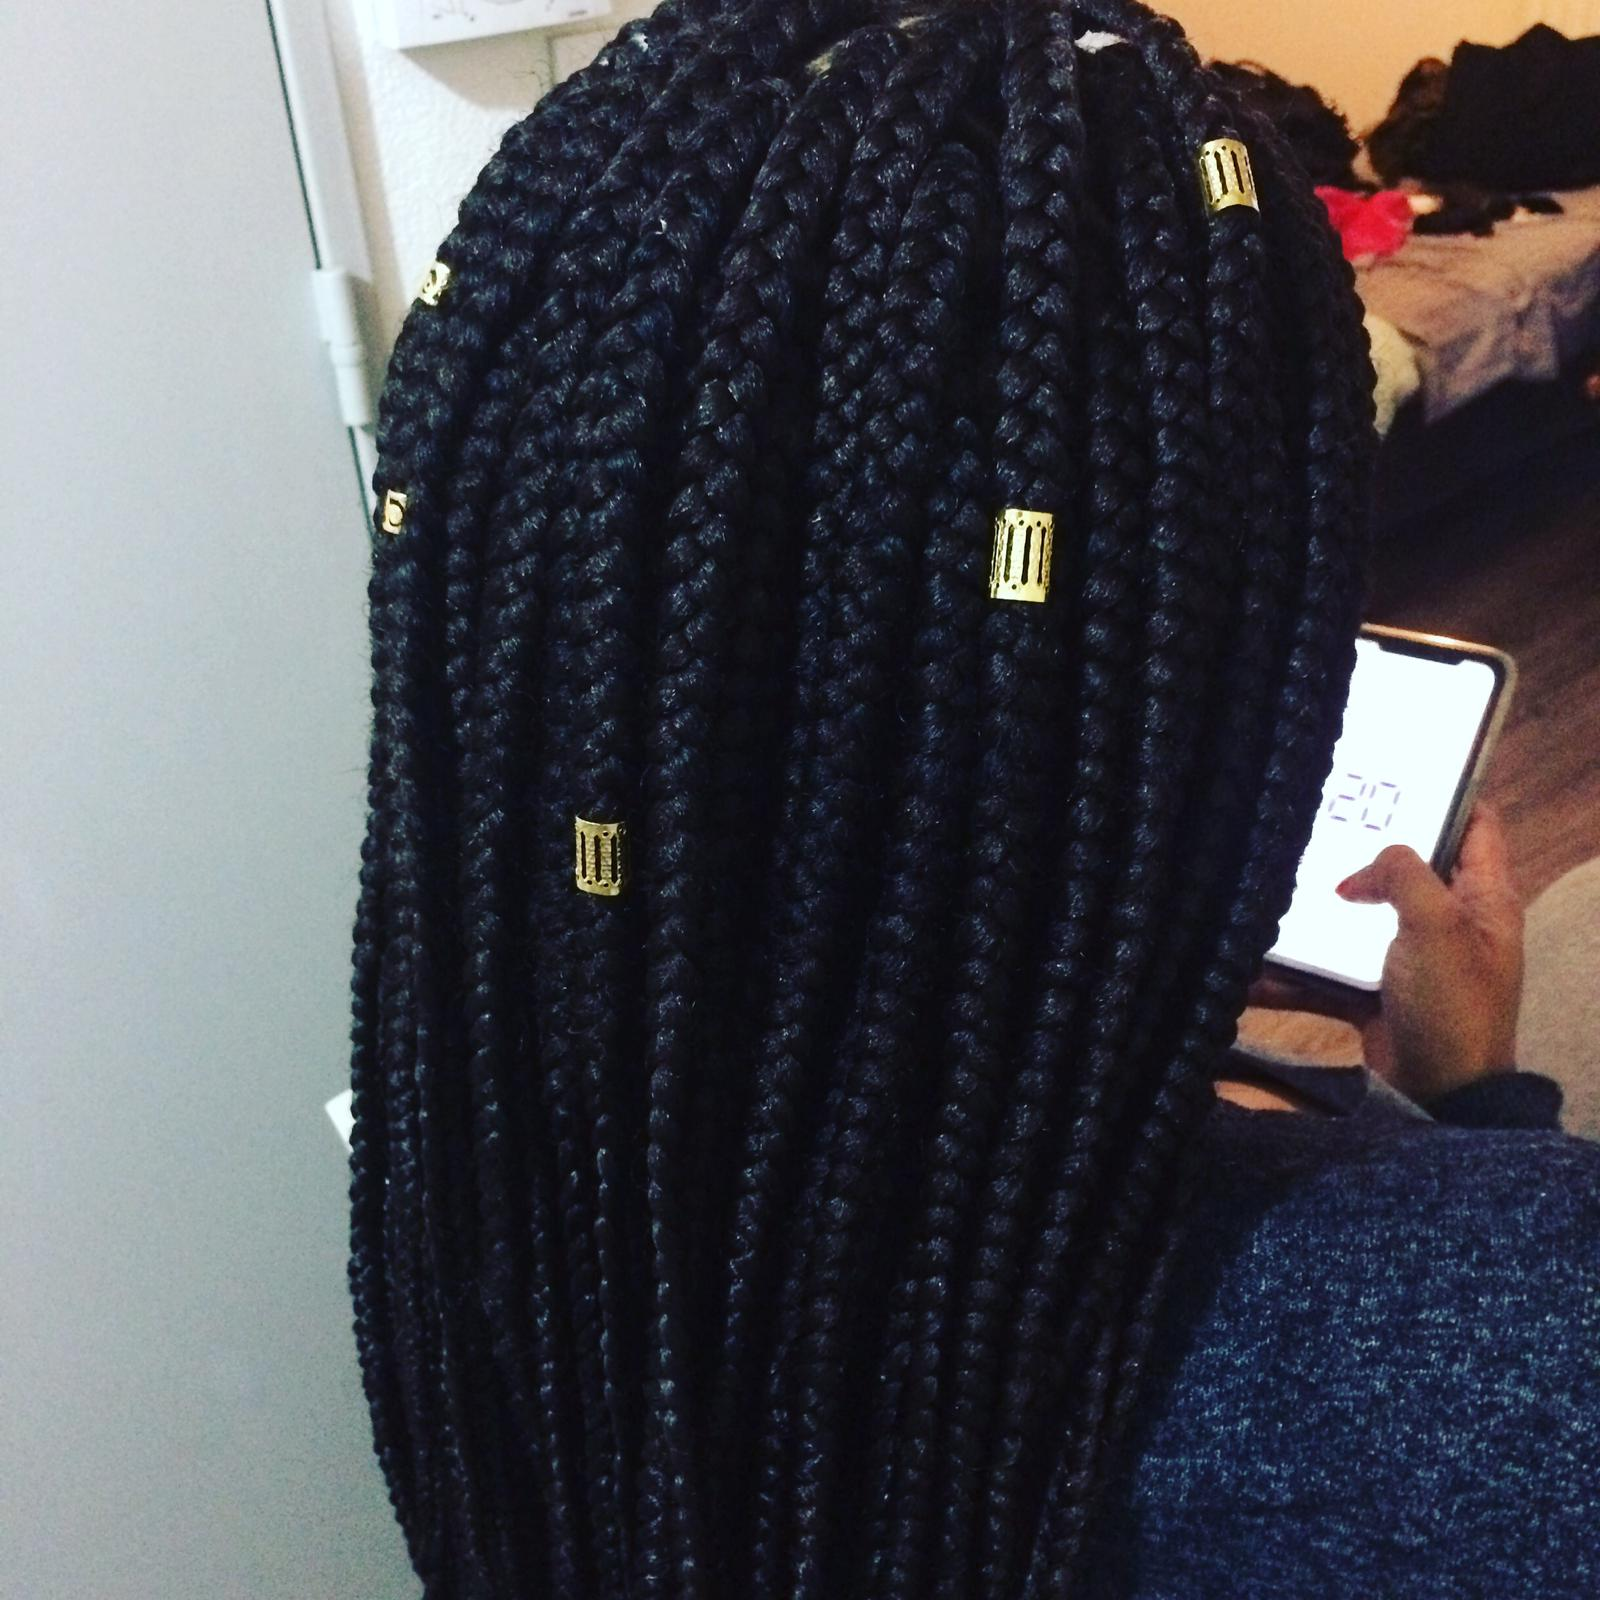 salon de coiffure afro tresse tresses box braids crochet braids vanilles tissages paris 75 77 78 91 92 93 94 95 XGZXZMUH